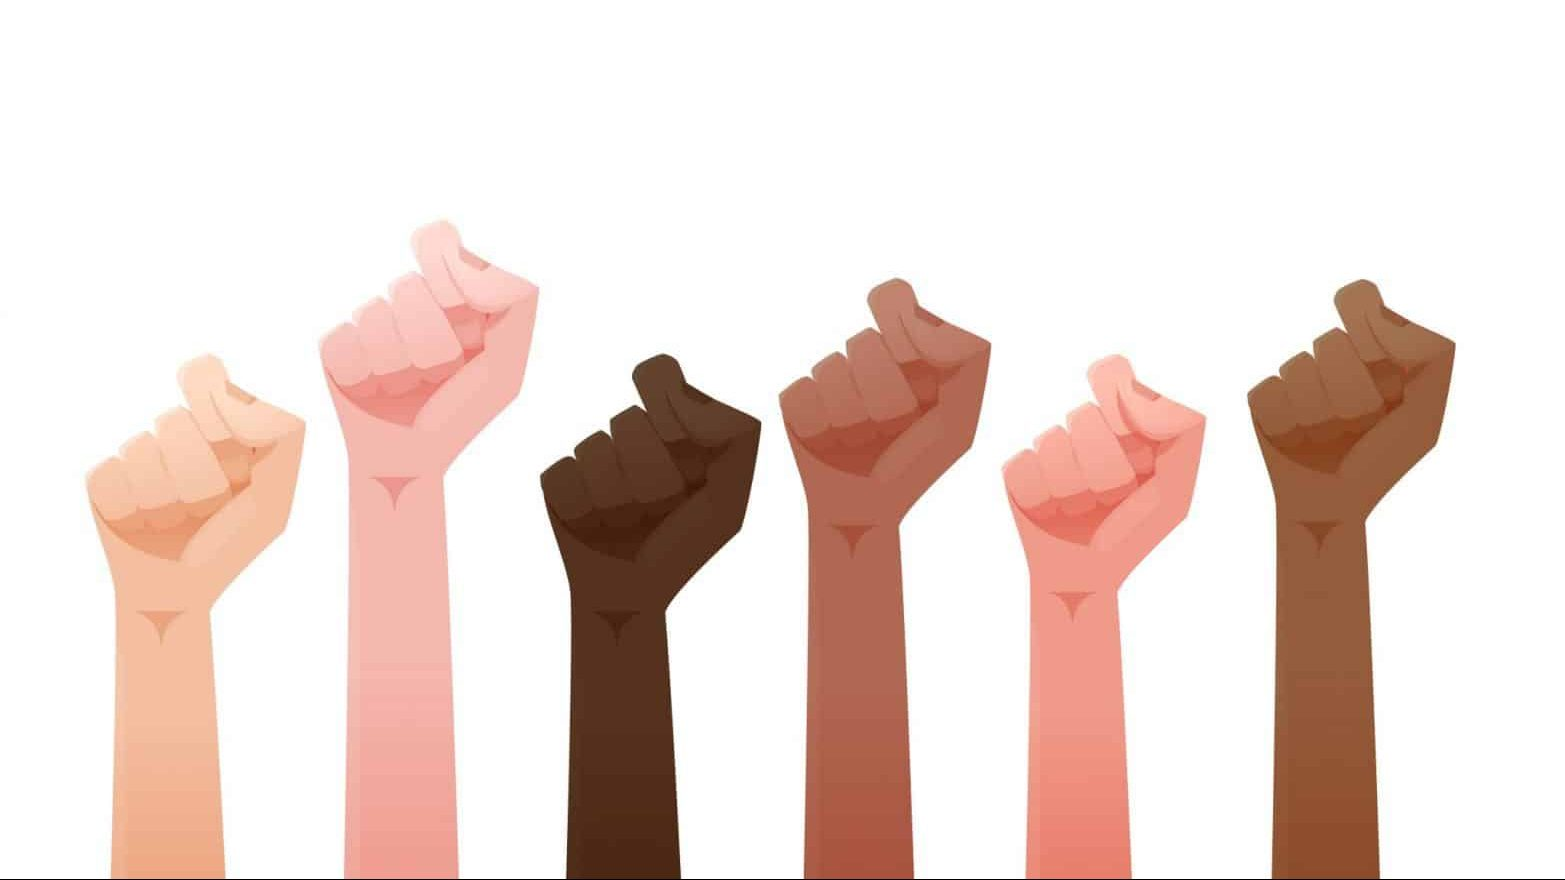 illustration of fists of people of different skin colors raised together in the air.